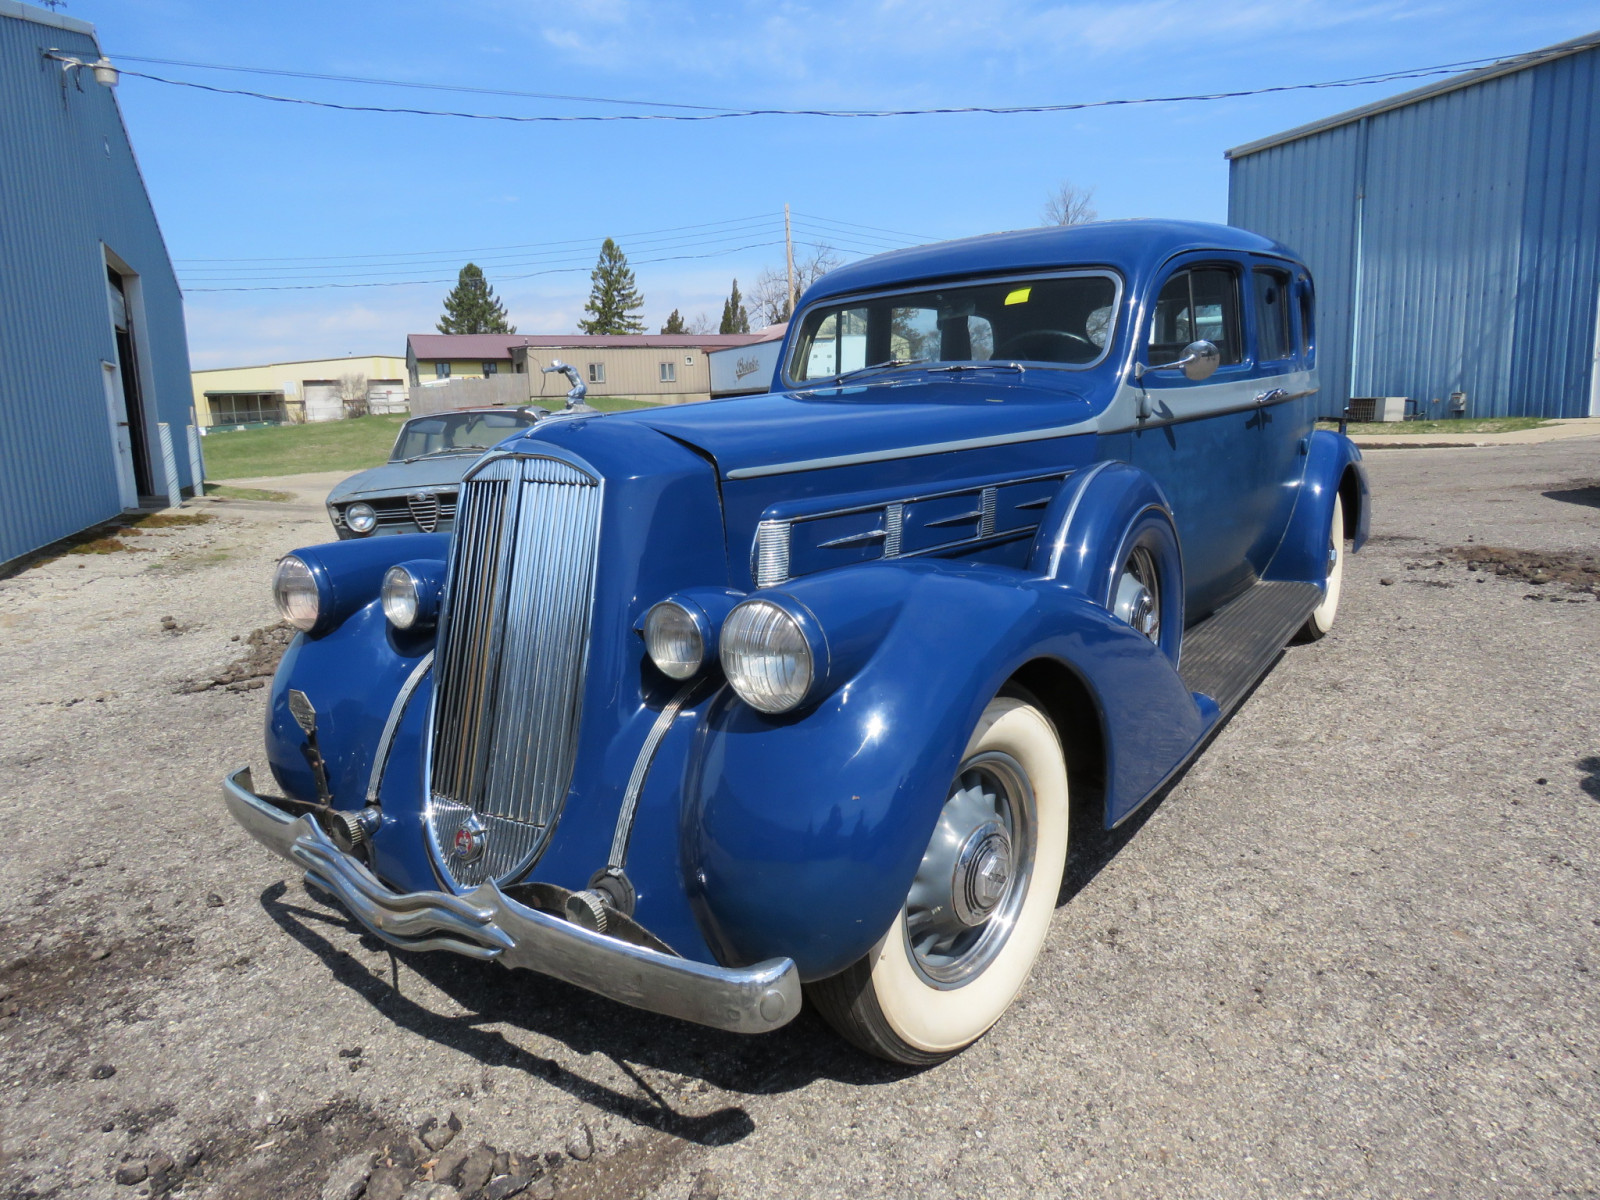 1936 Pierce Arrow V12  Series 1602 5 Passenger Sedan - Image 1